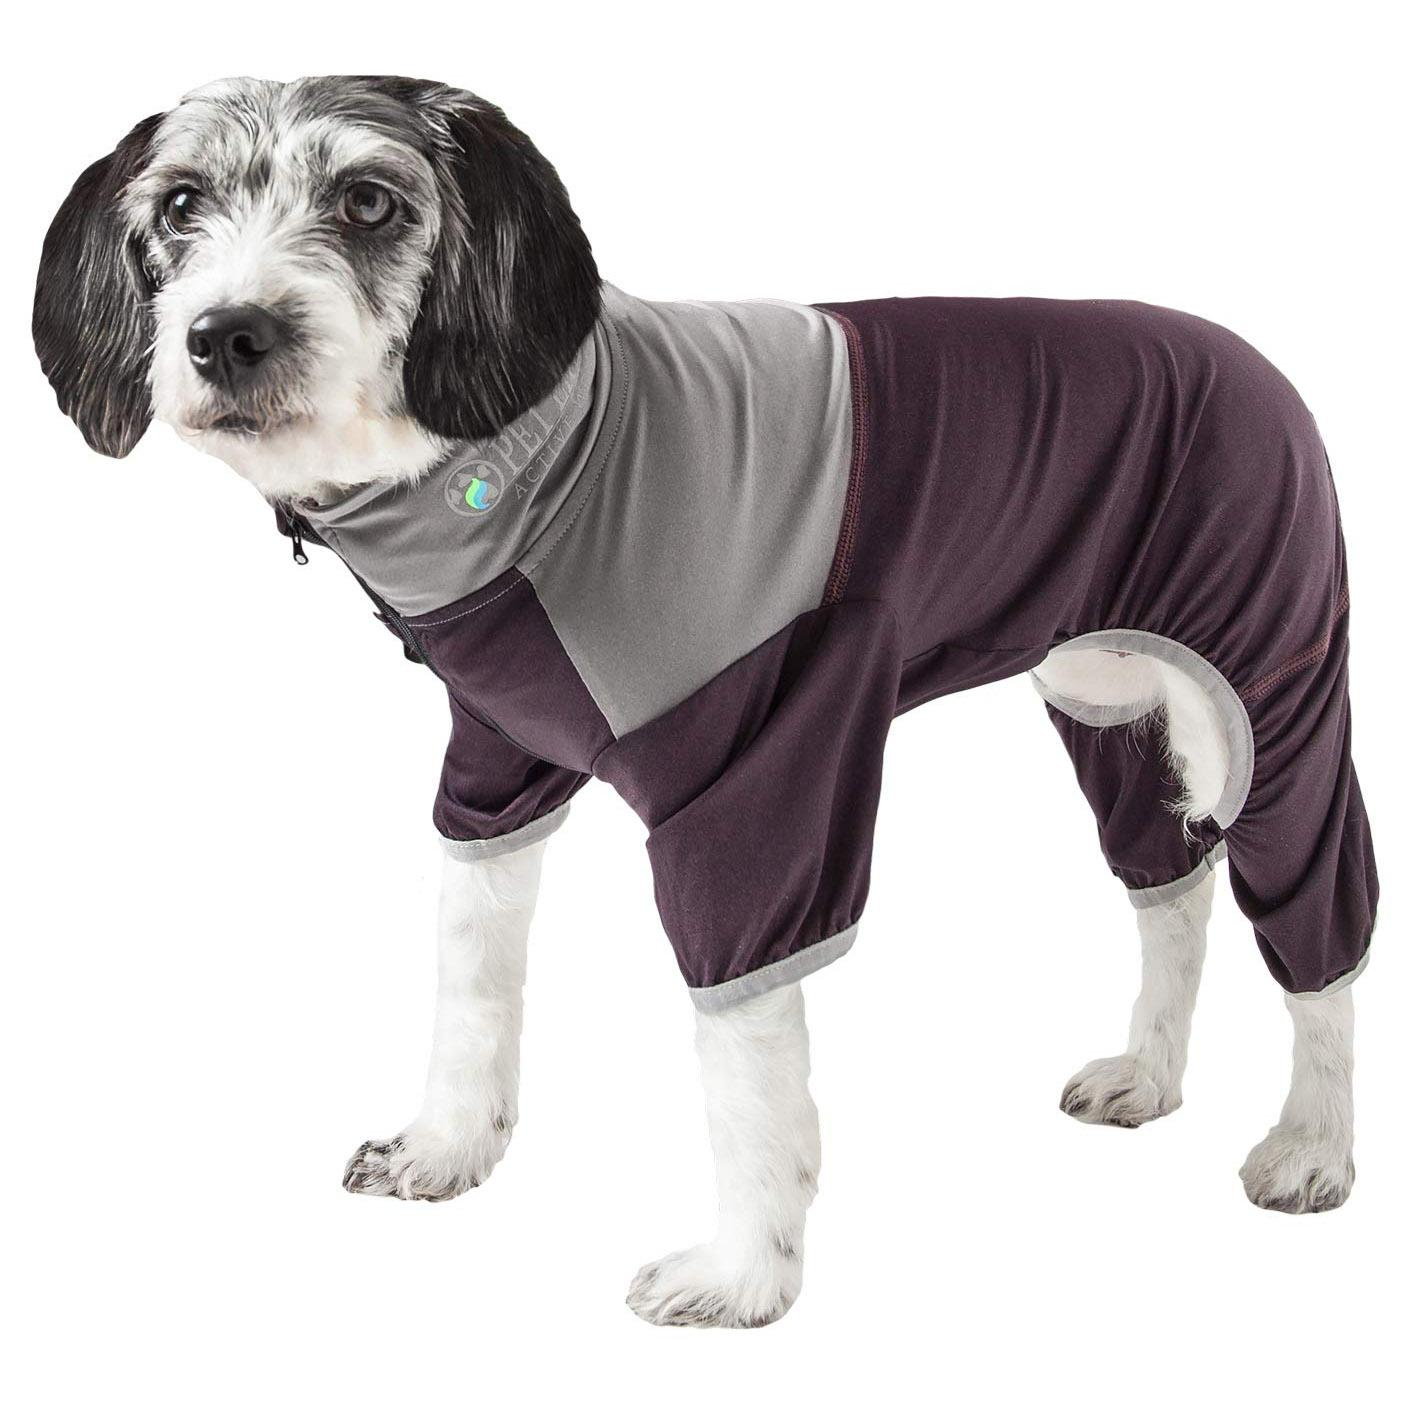 Pet Life ACTIVE 'Embarker' Performance Full-Body Dog Warm Up Suit - Raisin and Grey